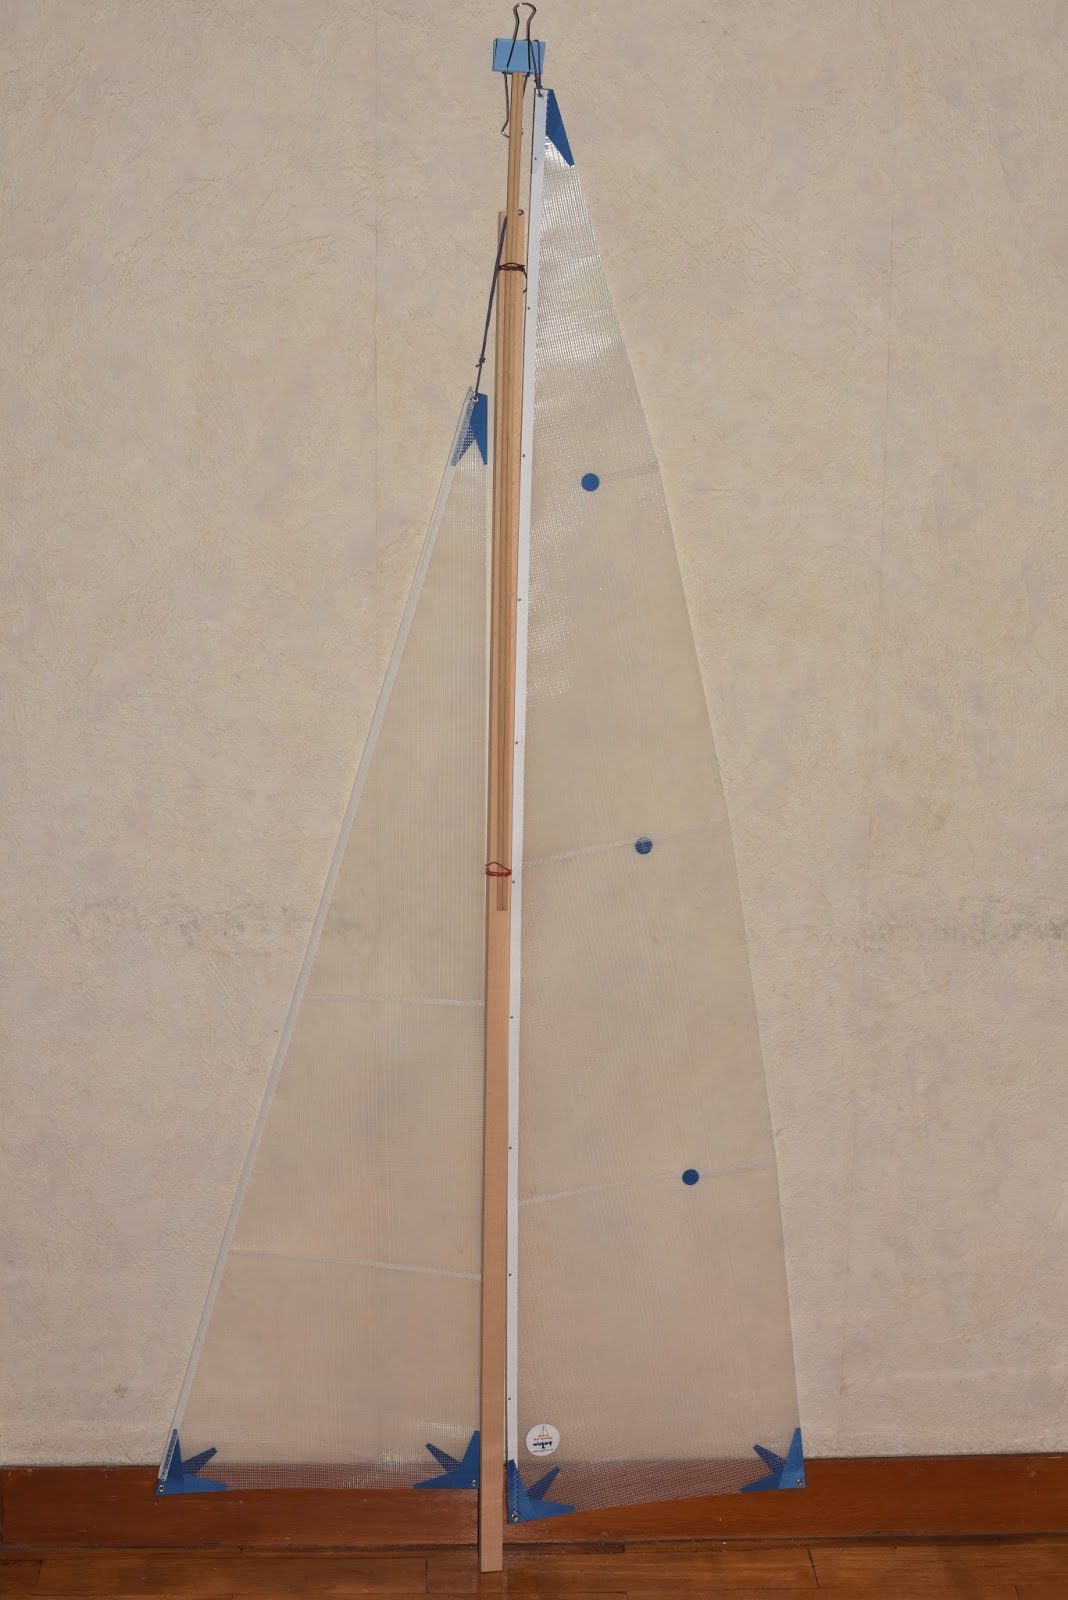 1  Nylet Spirit 3 sailing yacht RC model kit, the parts and